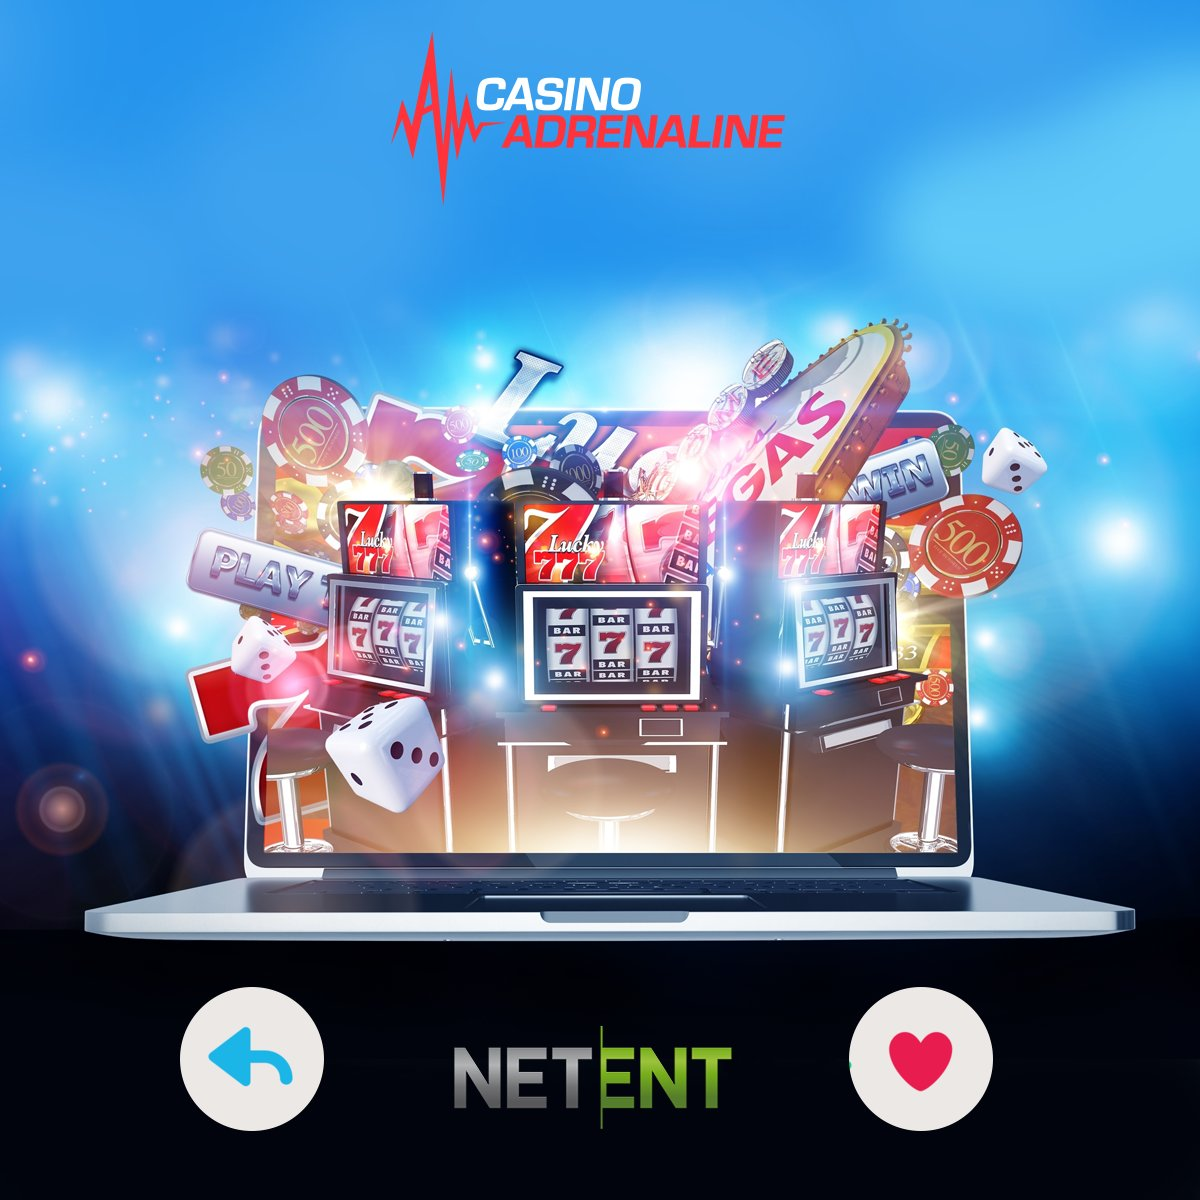 test Twitter Media - You already know that we are best online casino and that's NetEnt one of the best casino games providers. Reminder: https://t.co/DxyeyCqjzJ https://t.co/Fxh8awT2aA